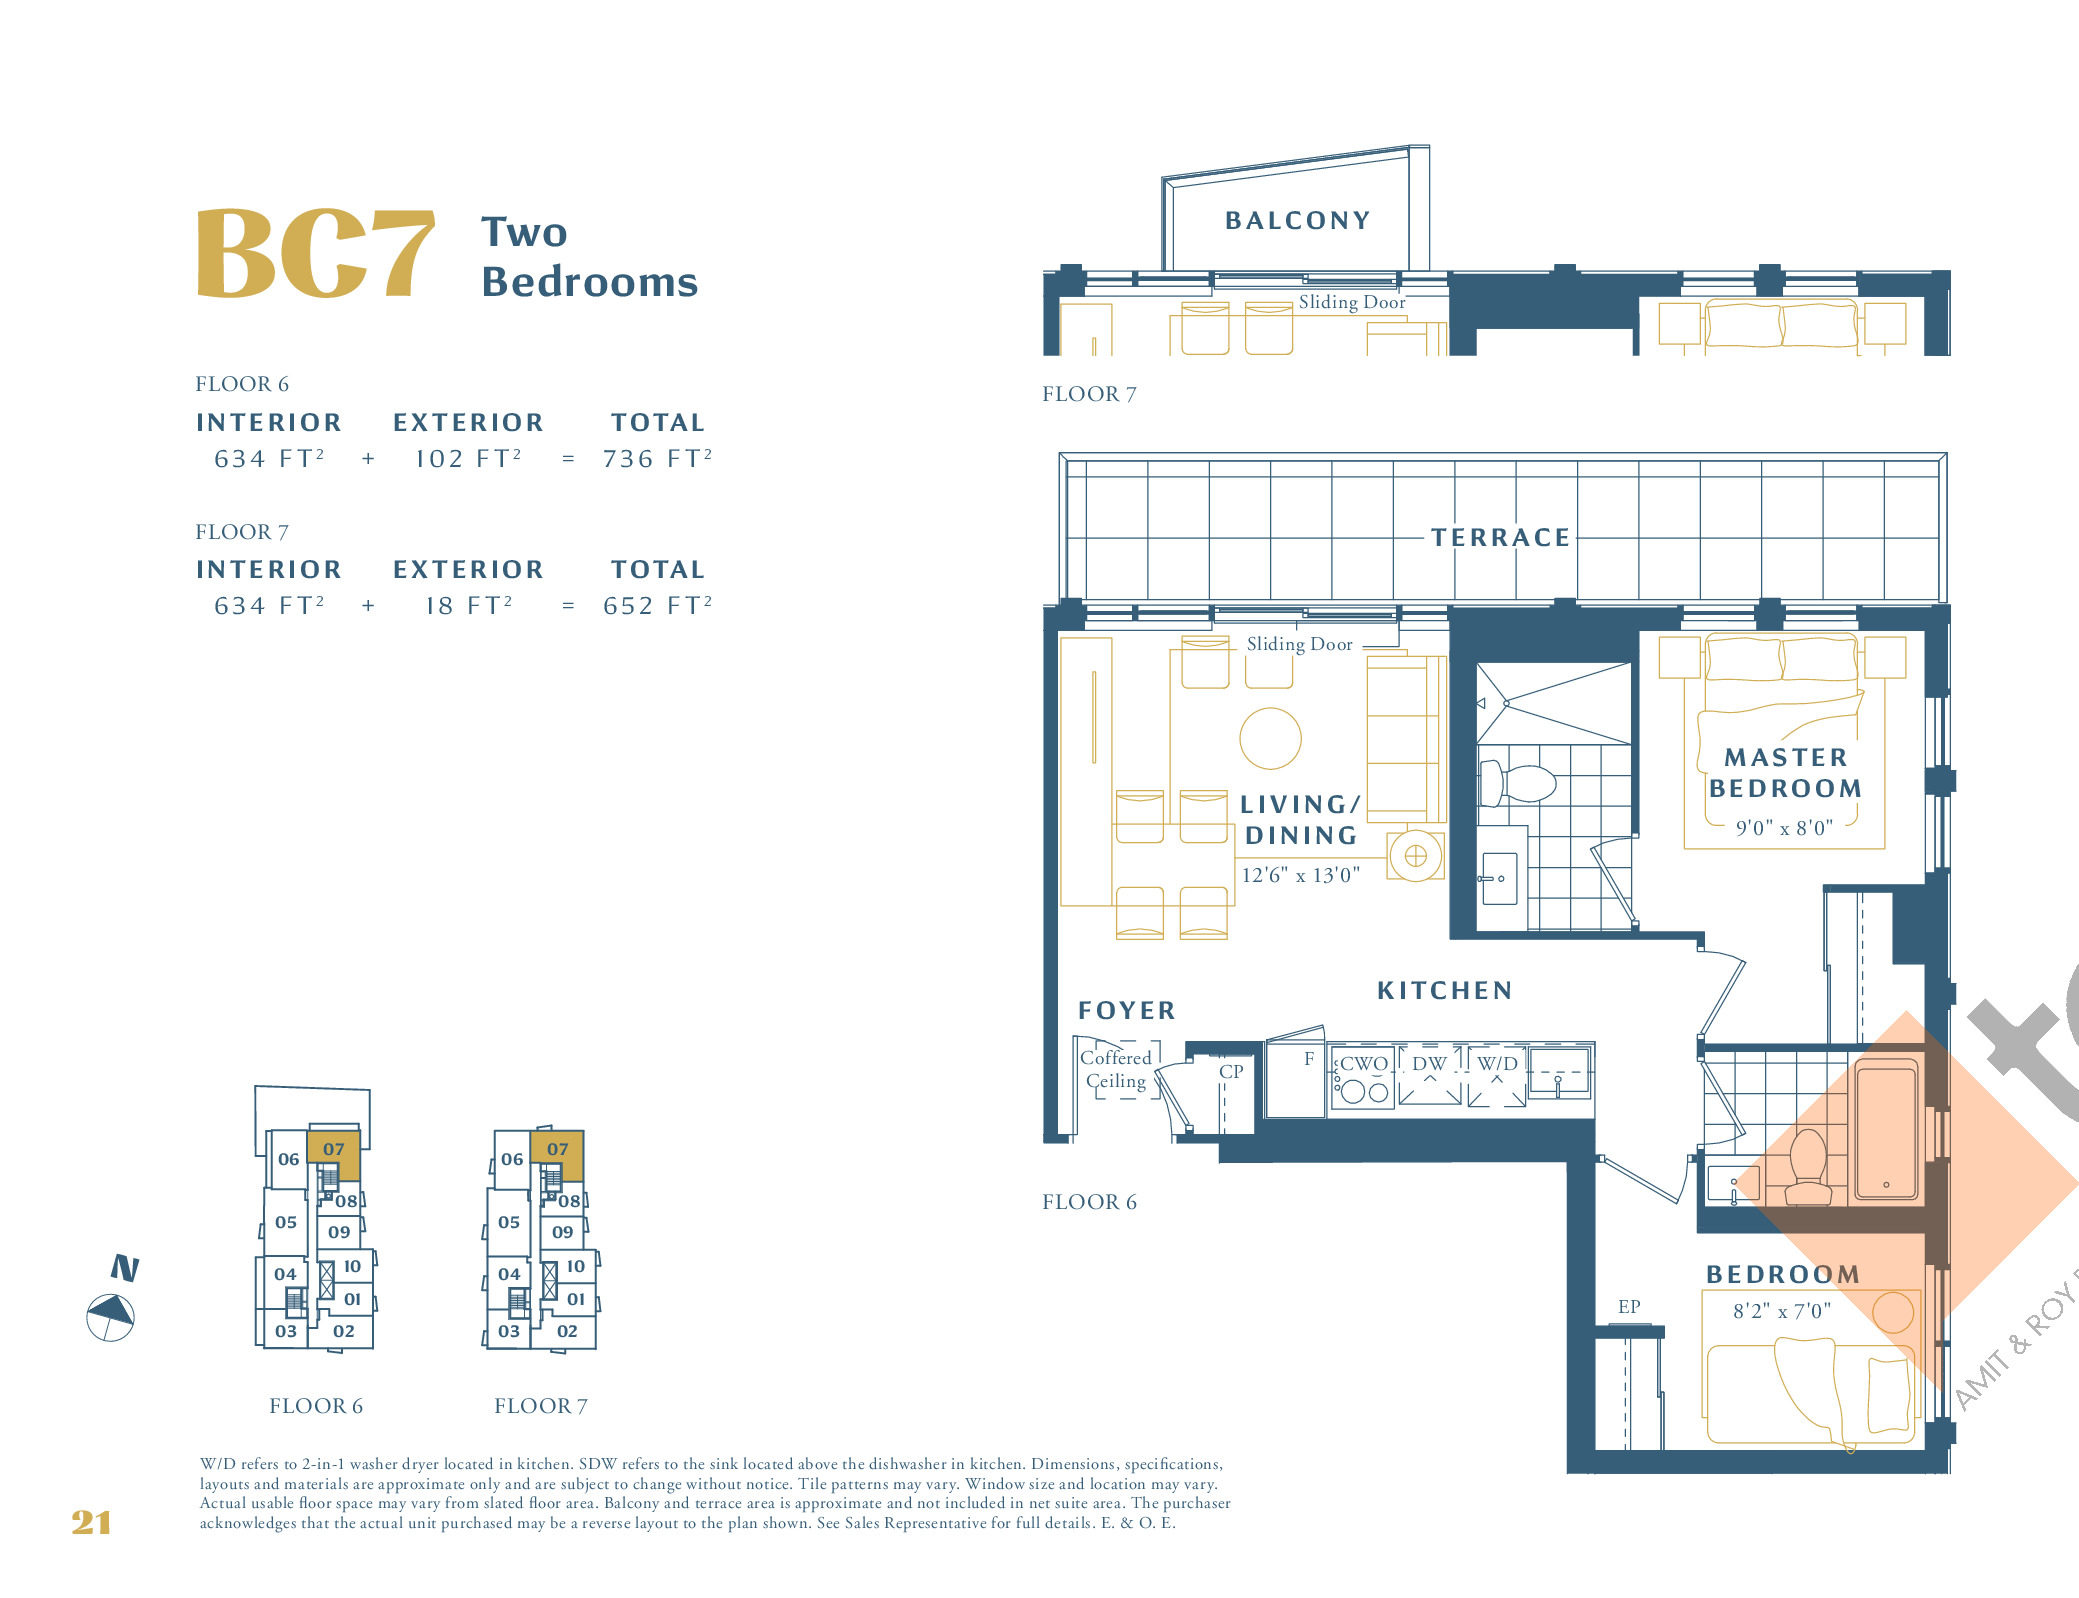 BC7 Floor Plan at The Borough Condos - Tower B - 634 sq.ft